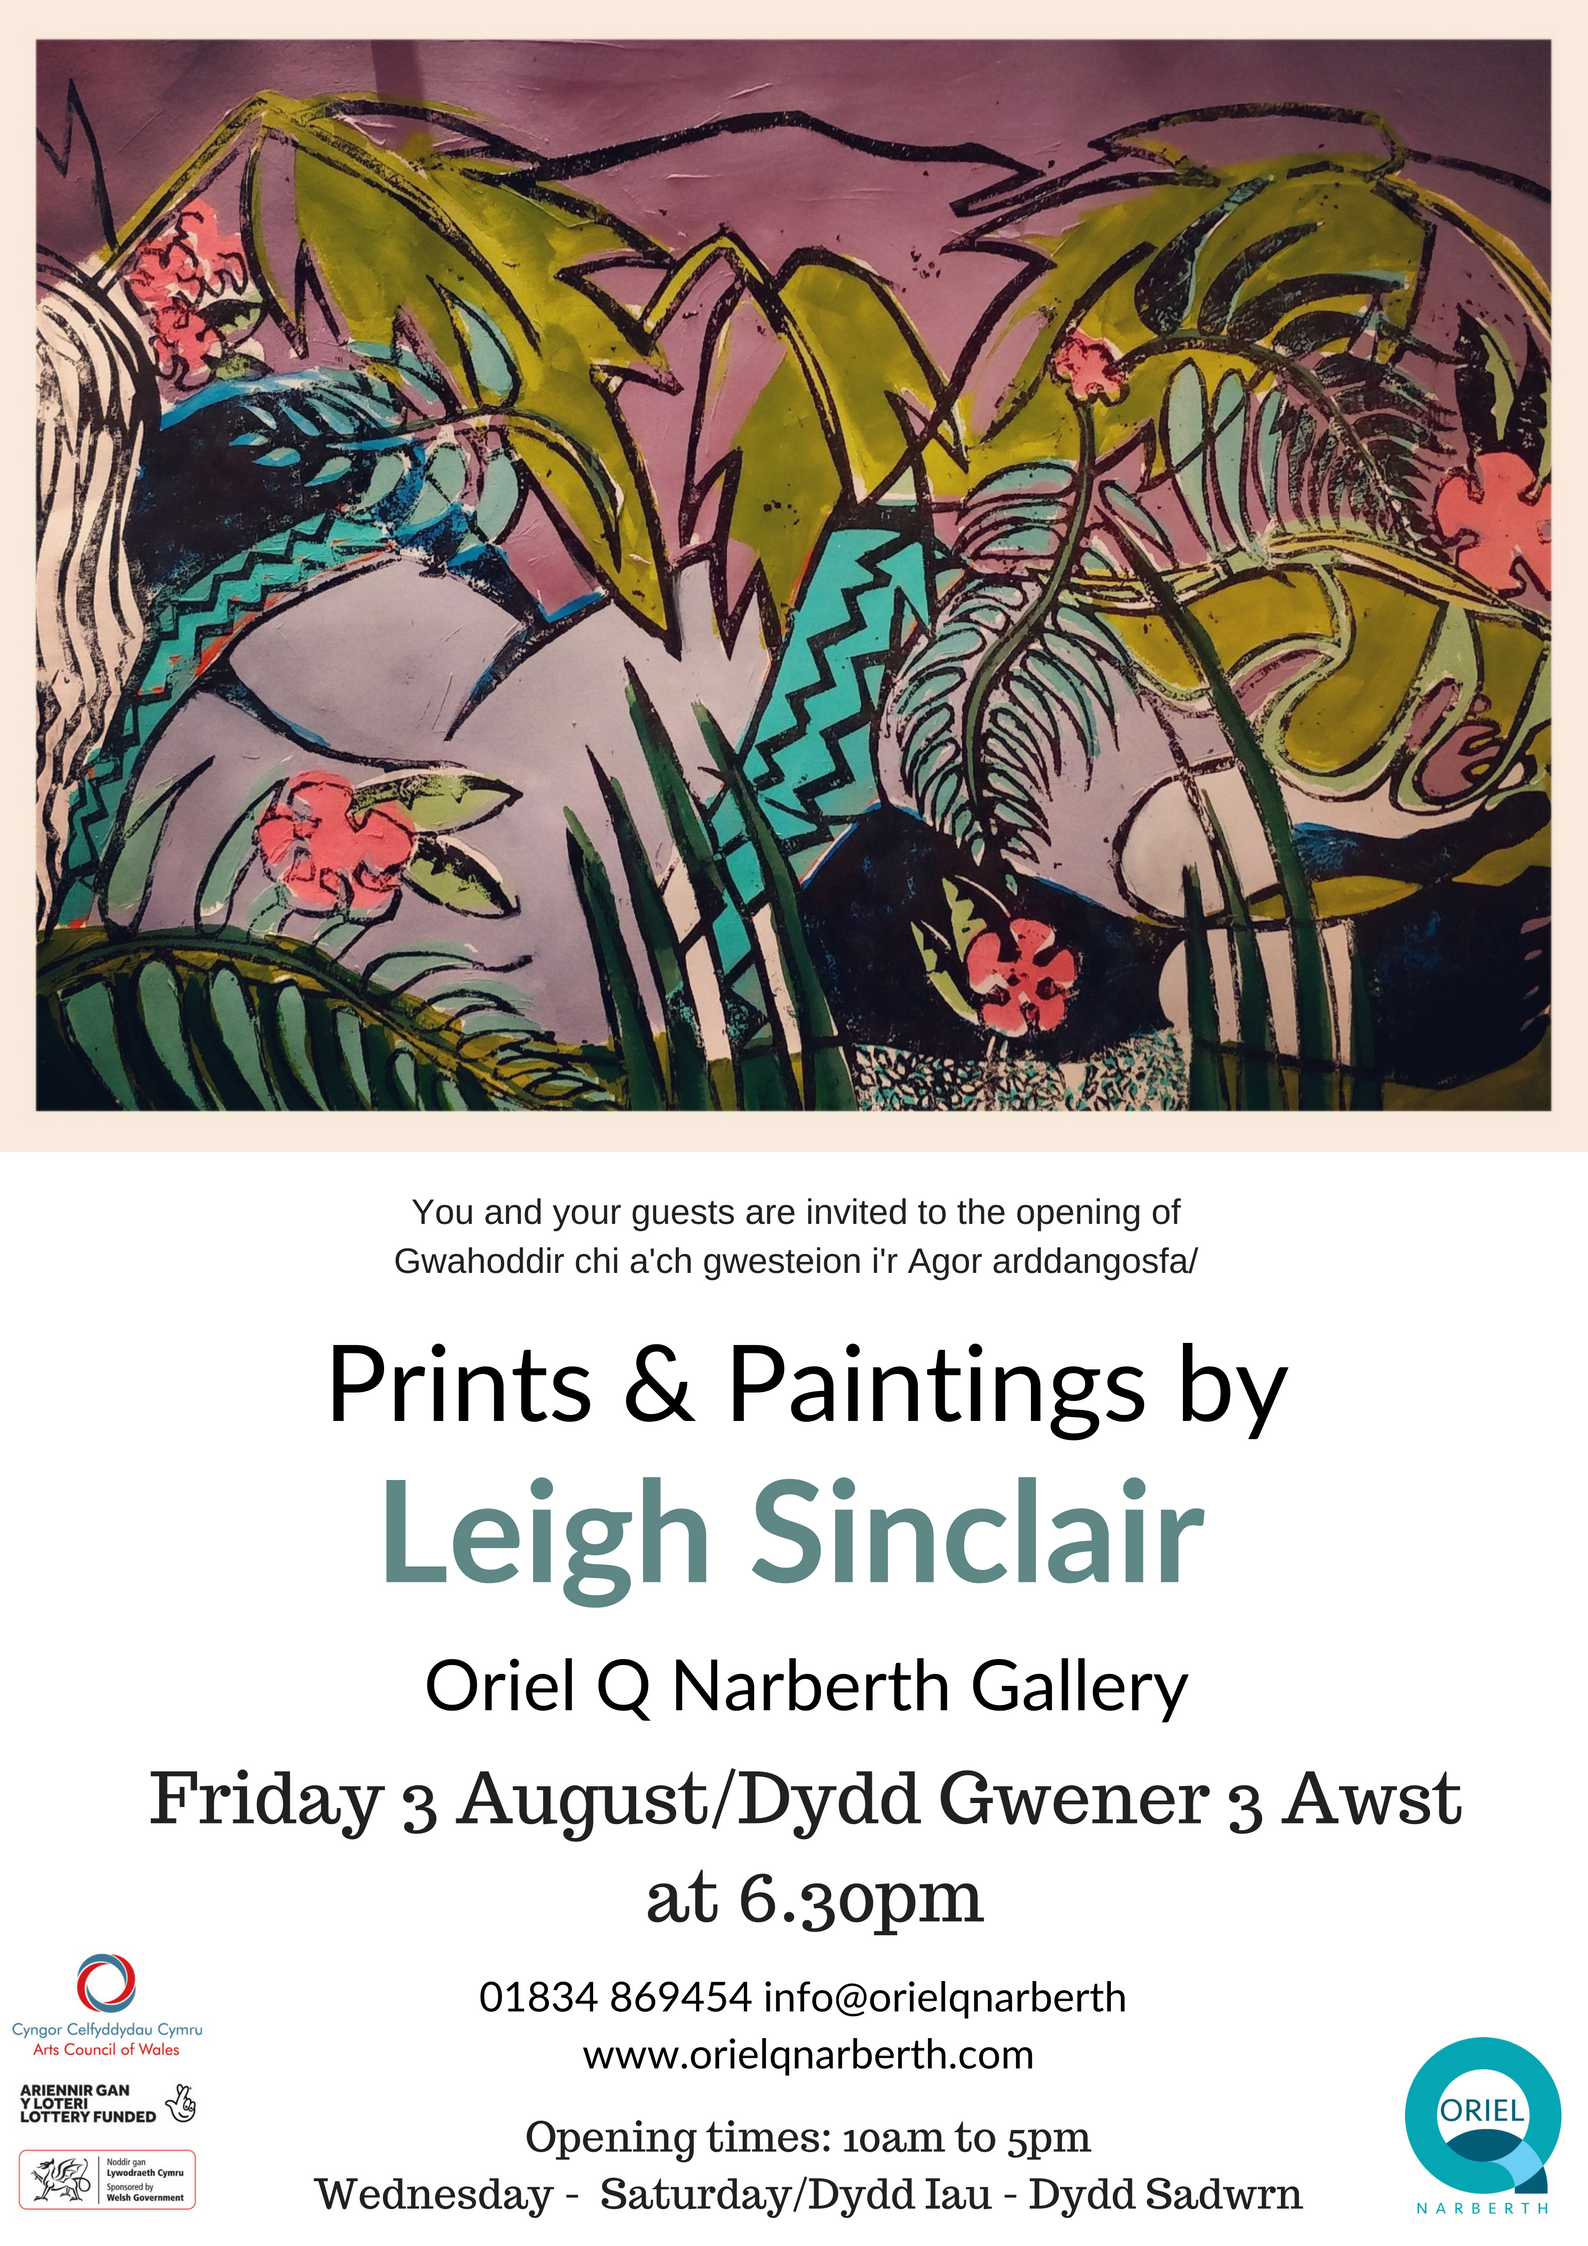 leigh sinclair poster invite.png